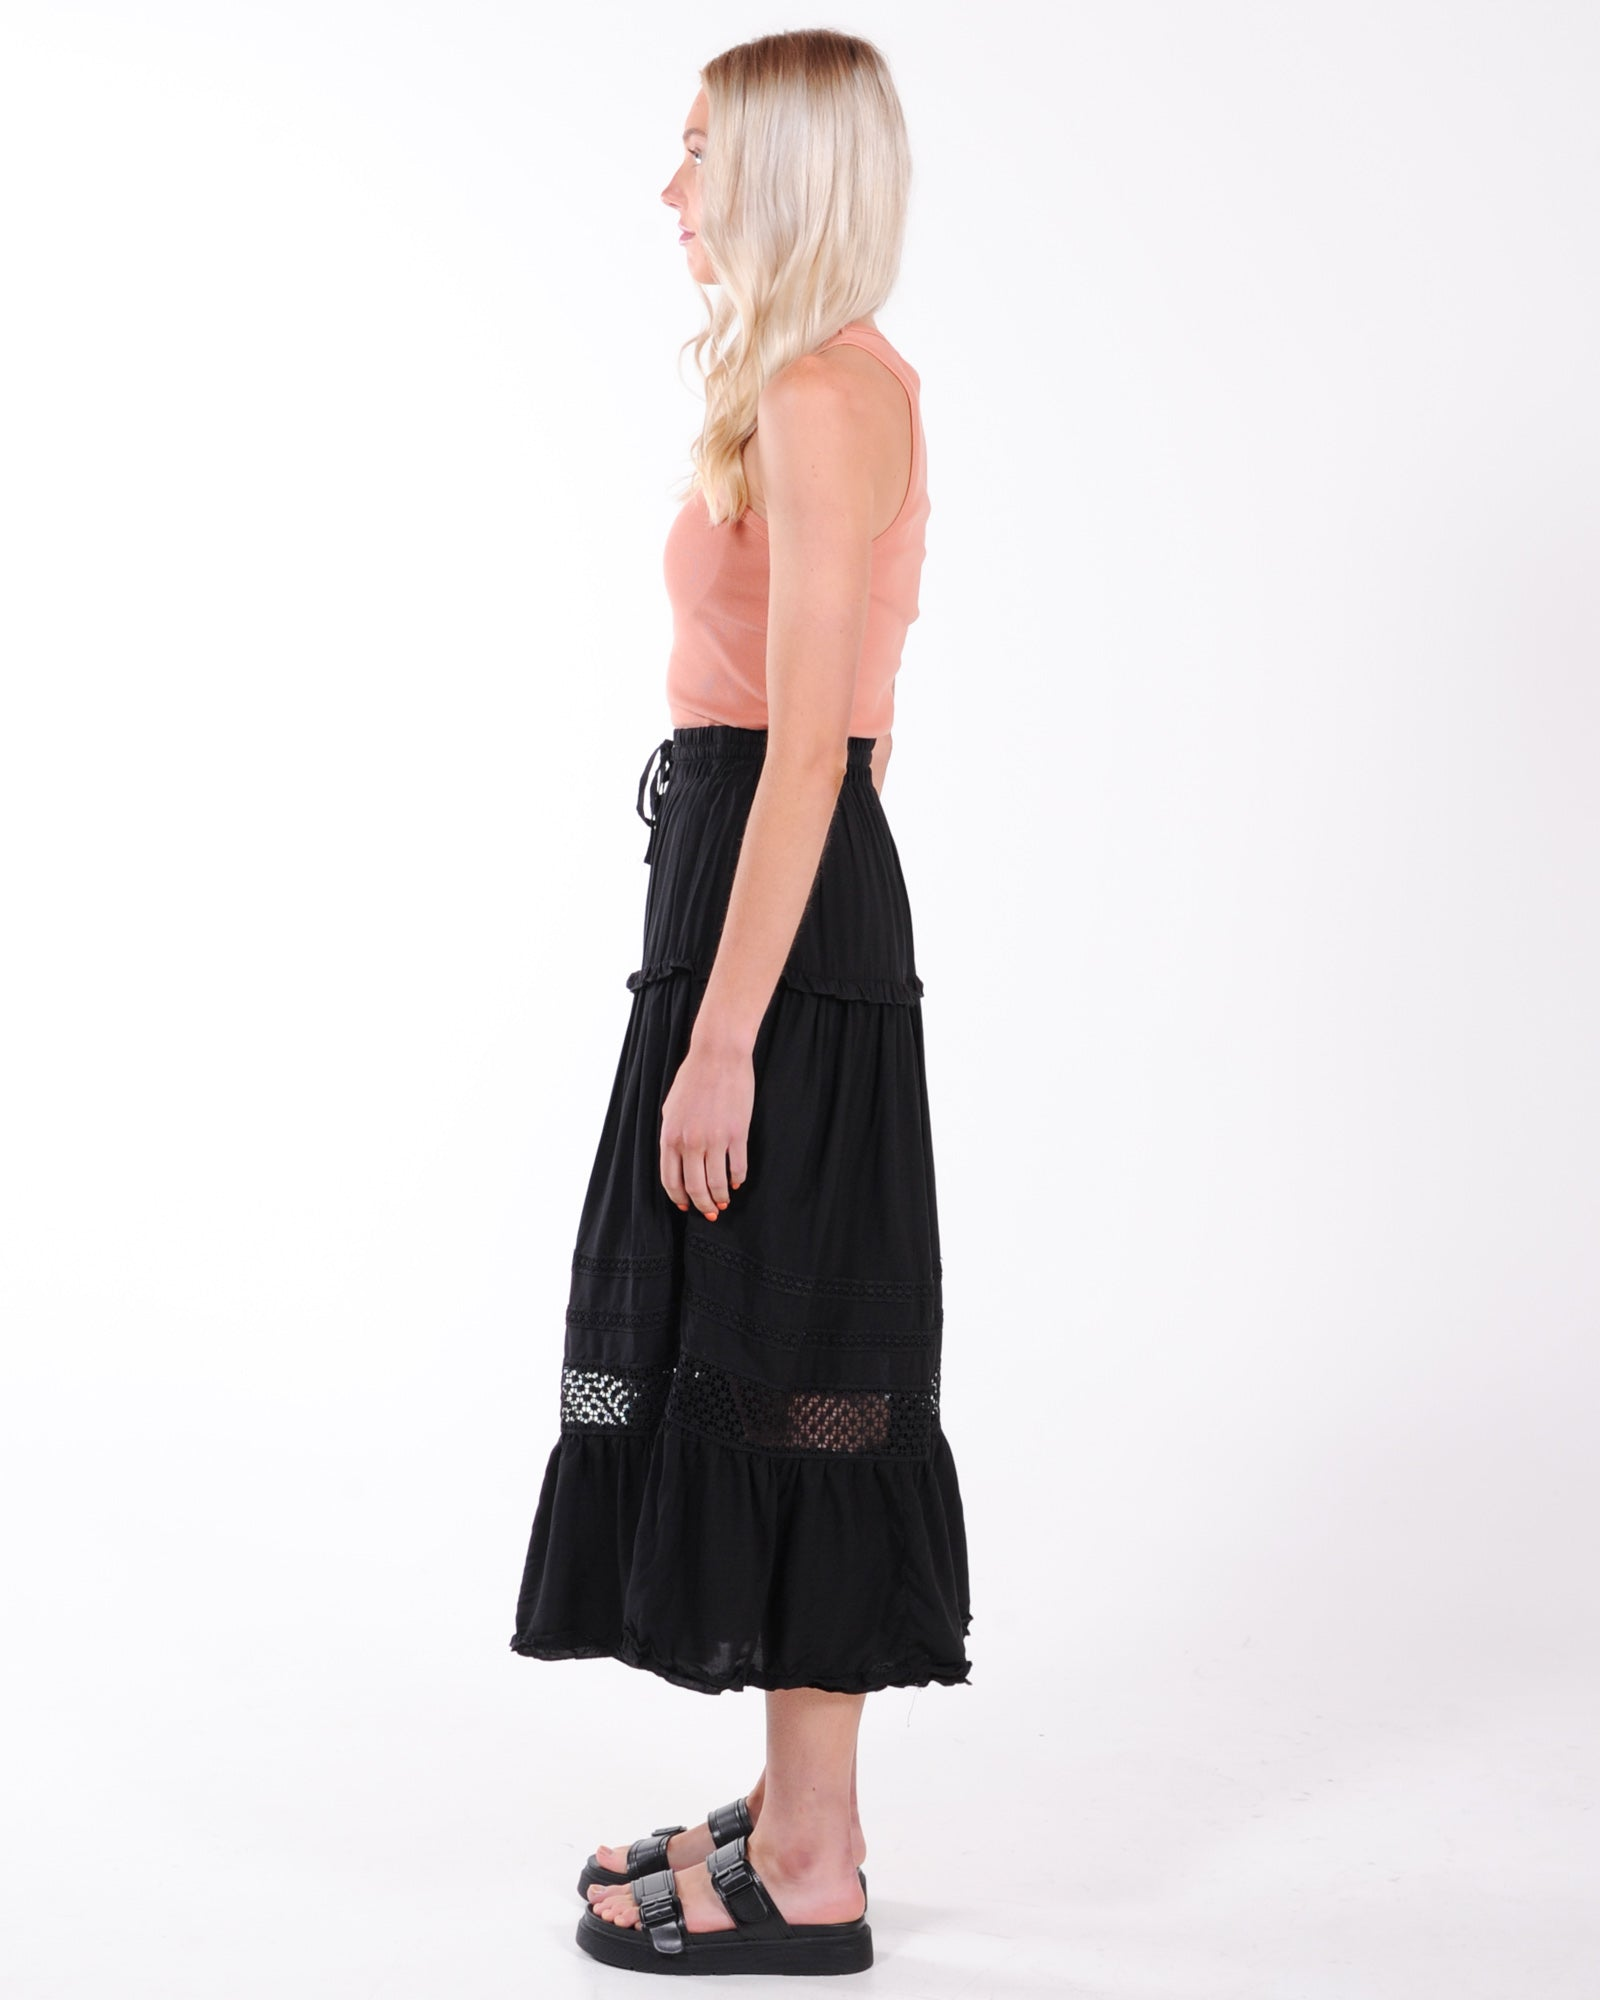 When In Rome Midi Skirt - Black